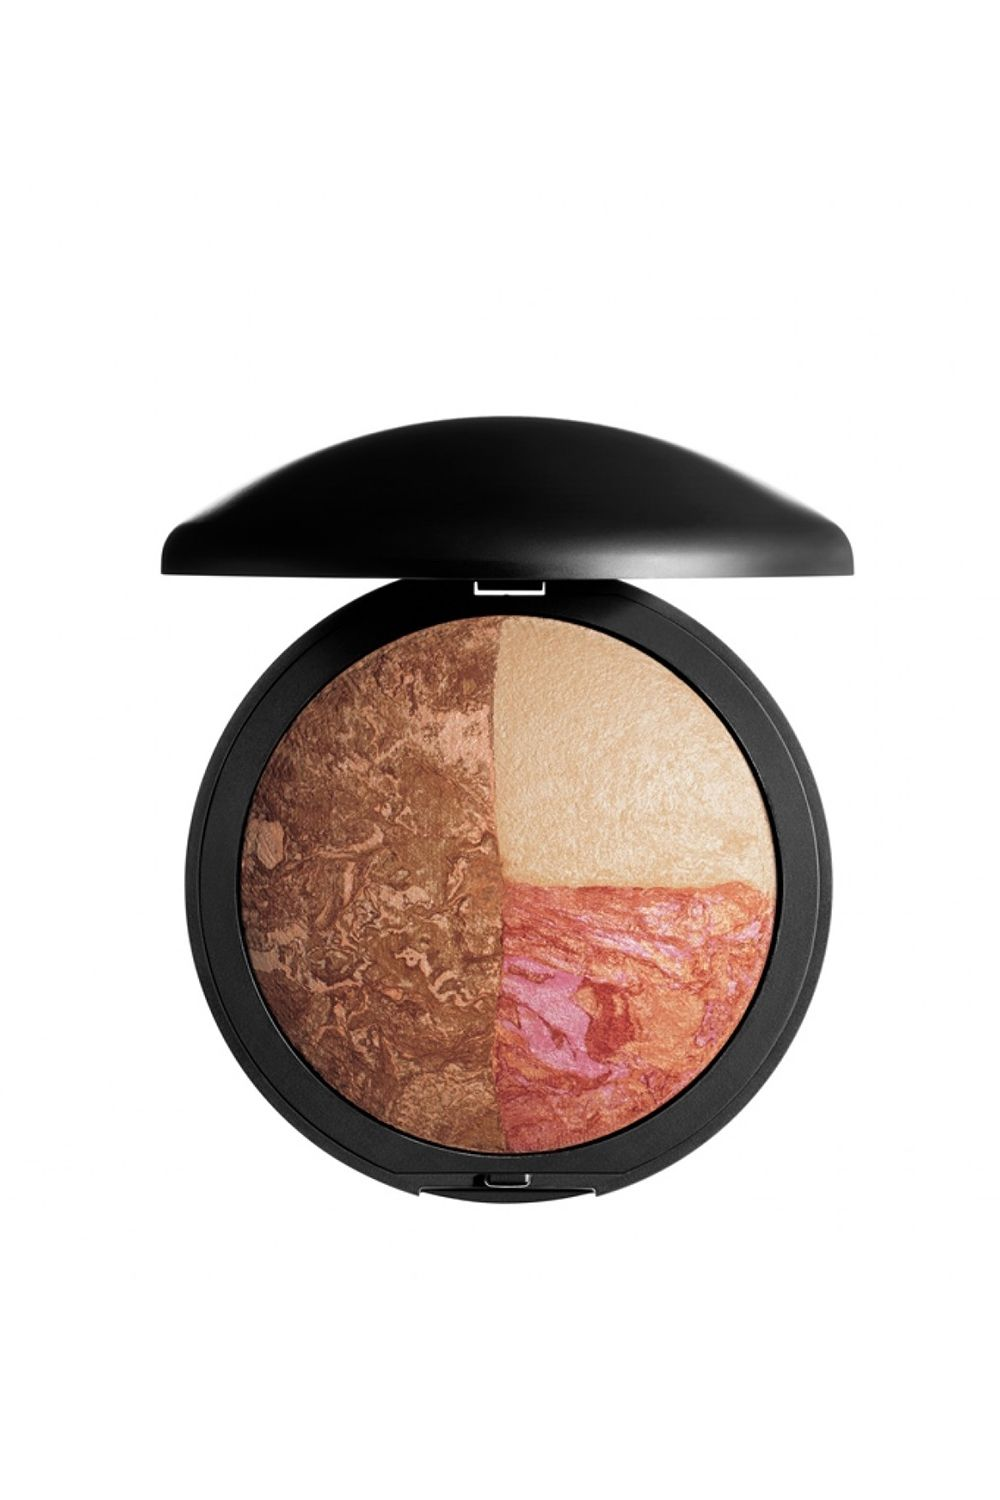 "<p>Laura Geller's baked together color trio may be the prettiest contour kit we've seen this year, and the colors are ultra-flattering, from a pigmented raspberry blush to a shimmery bronze shade. </p><p><strong>Laura Geller Baked Color and Contour Palette, $45&#x3B; <a href=""http://www.ulta.com/baked-color-contour-palette?productId=xlsImpprod13971081"" target=""_blank"">ulta.com</a>. </strong></p>"